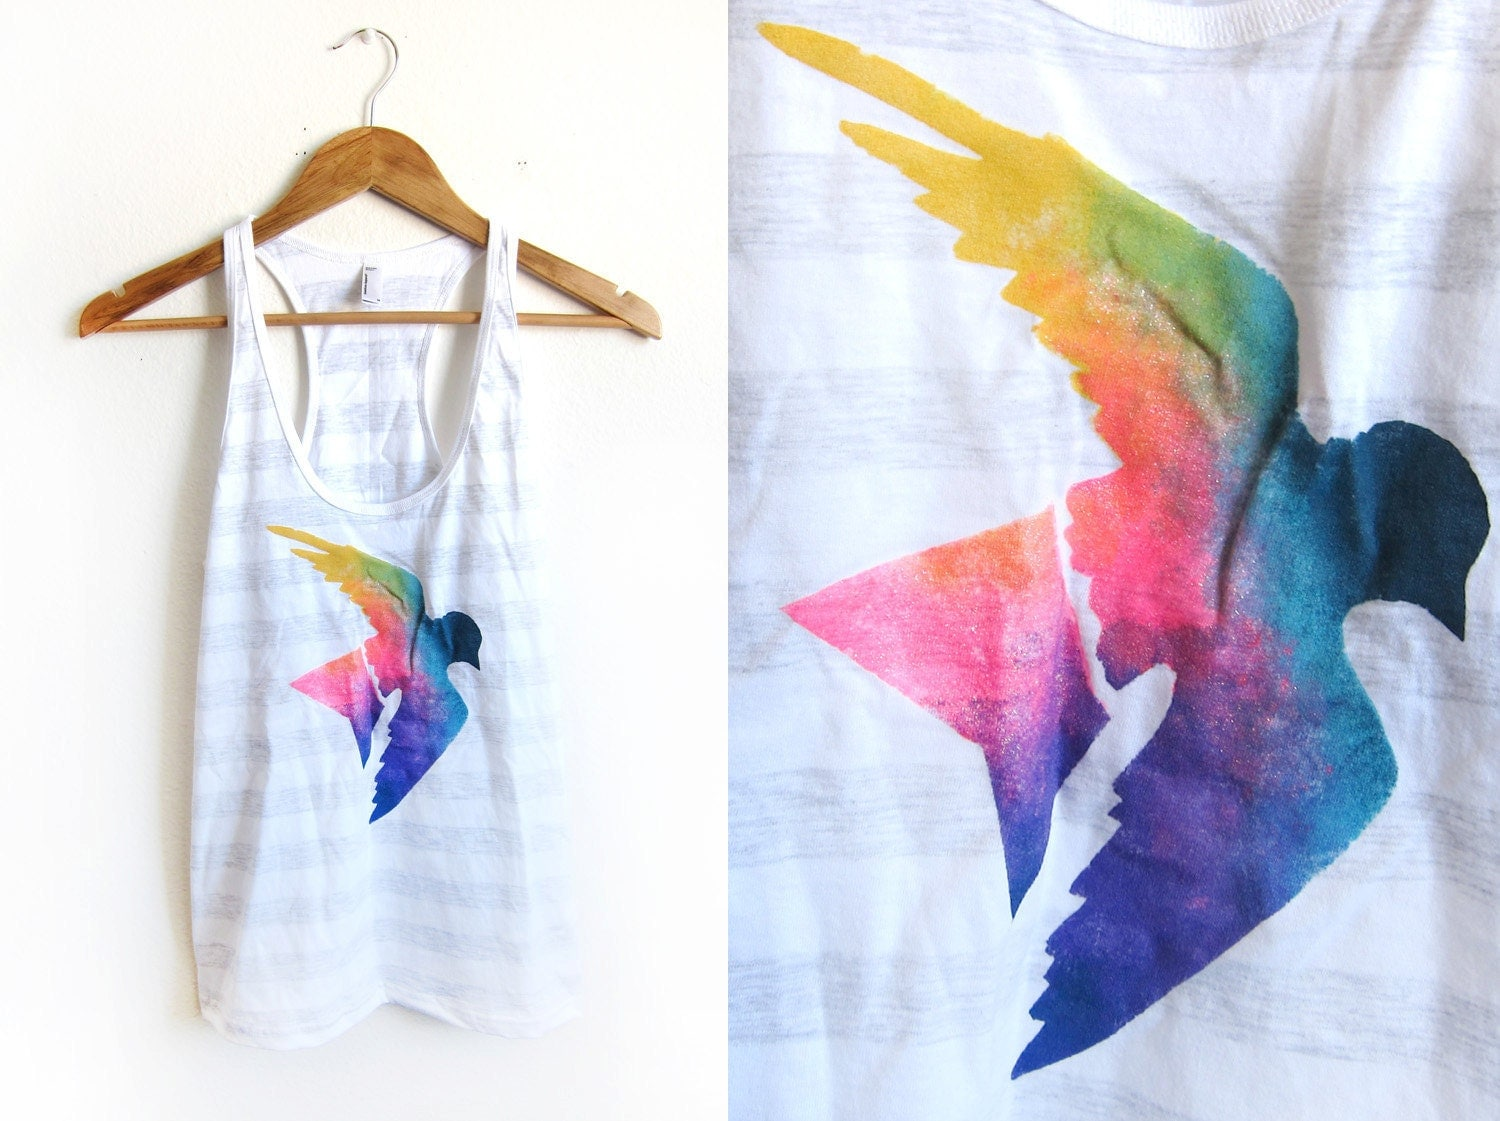 Splash Dyed HAND PAINTED Heather Striped Sparrow Swing Tank Top in Spectrum Rainbow